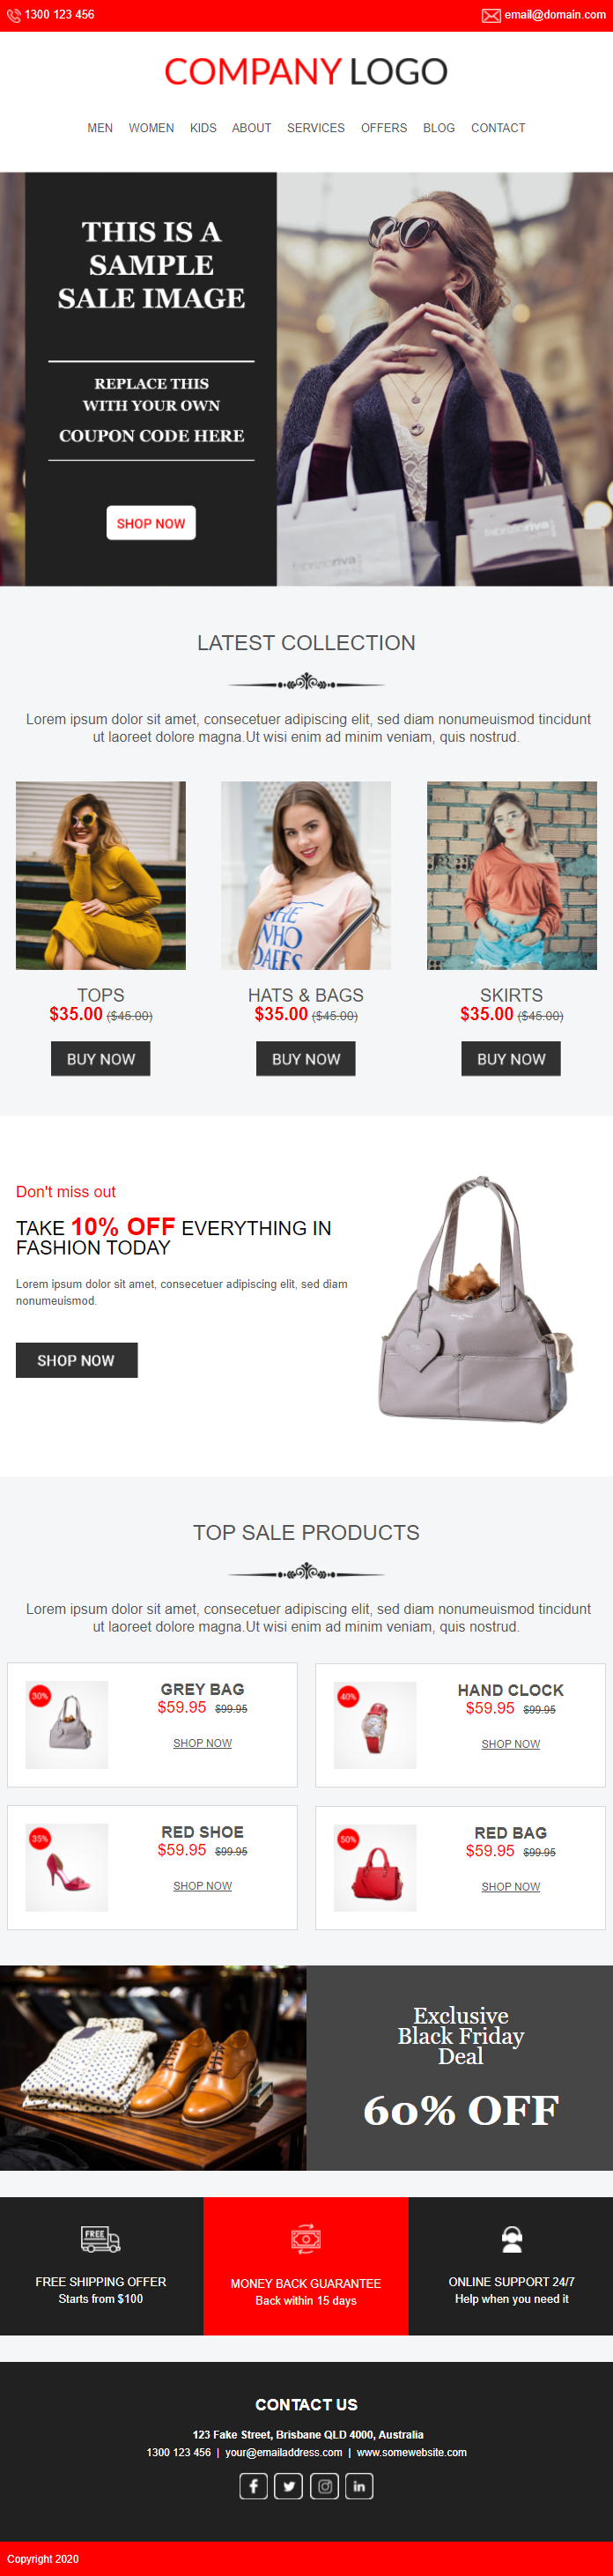 Ecommerce Email Template #1